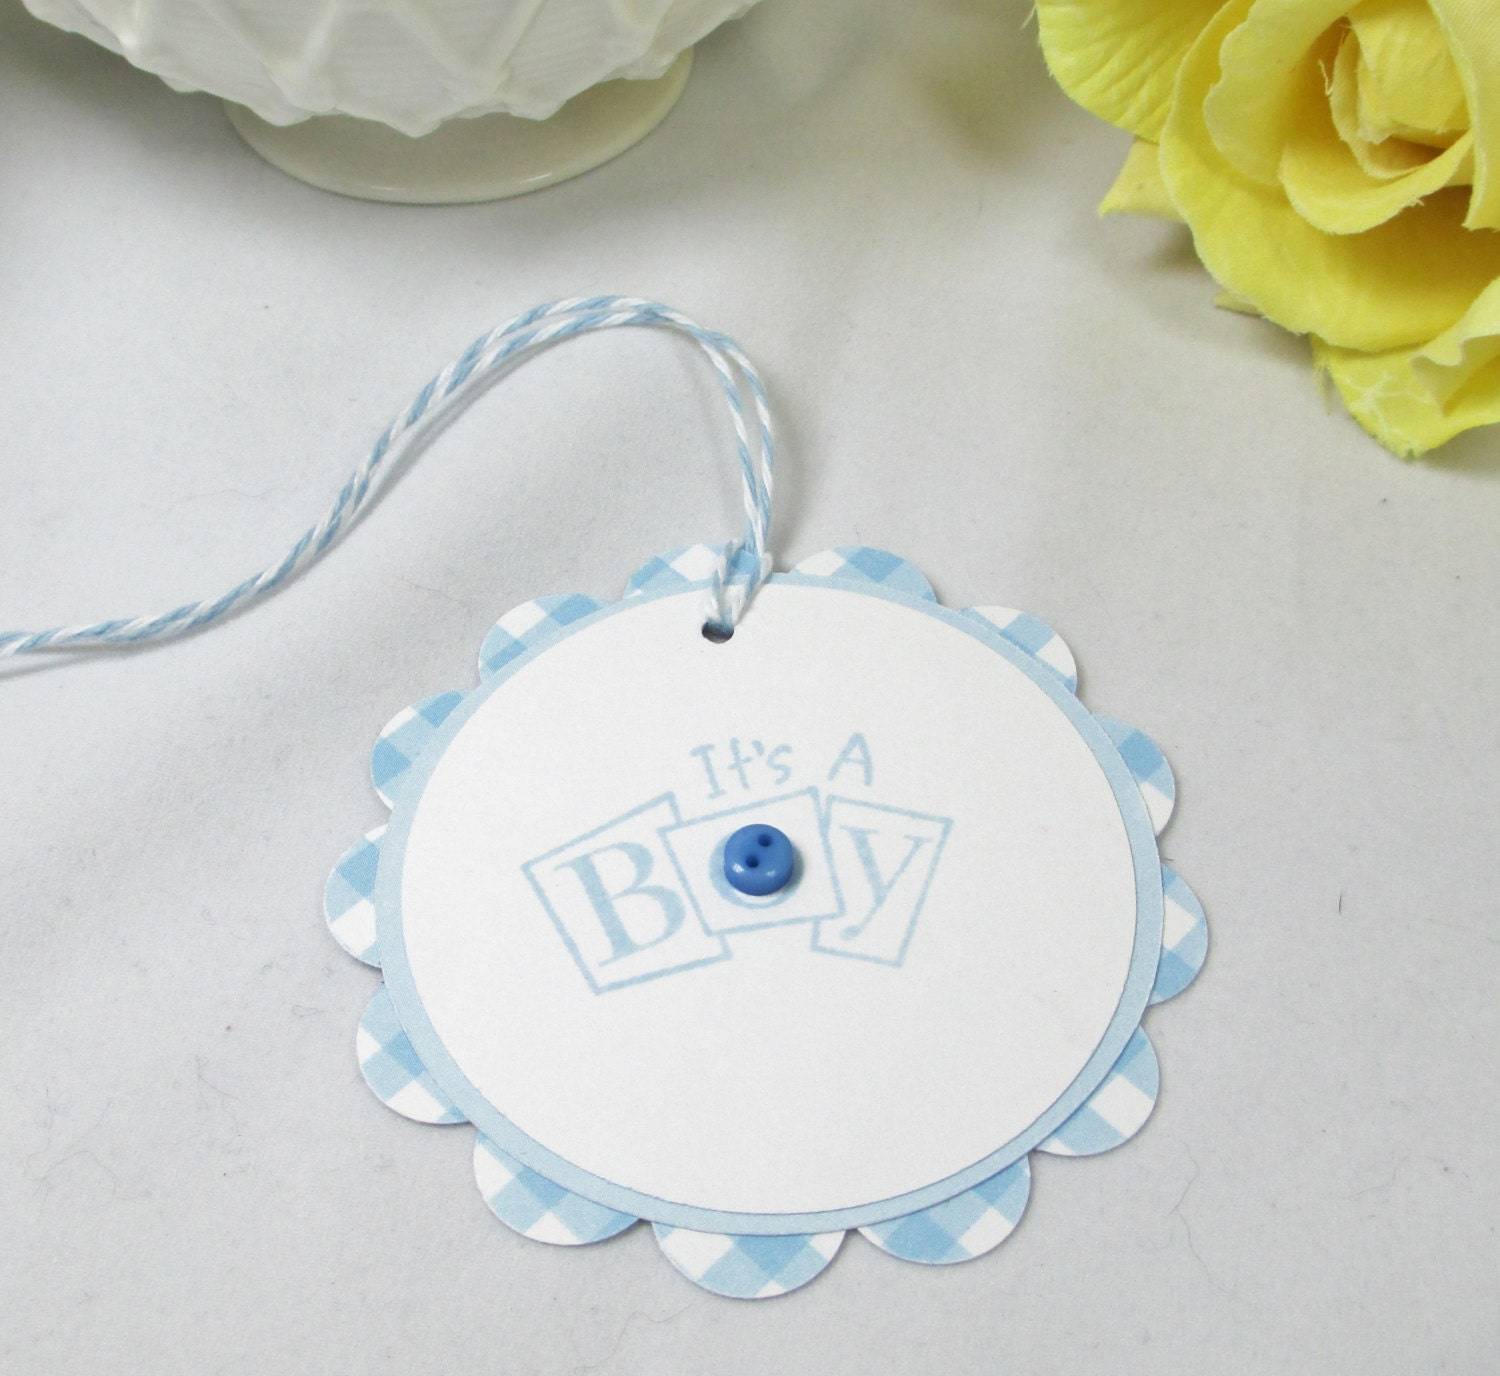 10 Baby Tags Gift Tags Boy Baby Shower Favor